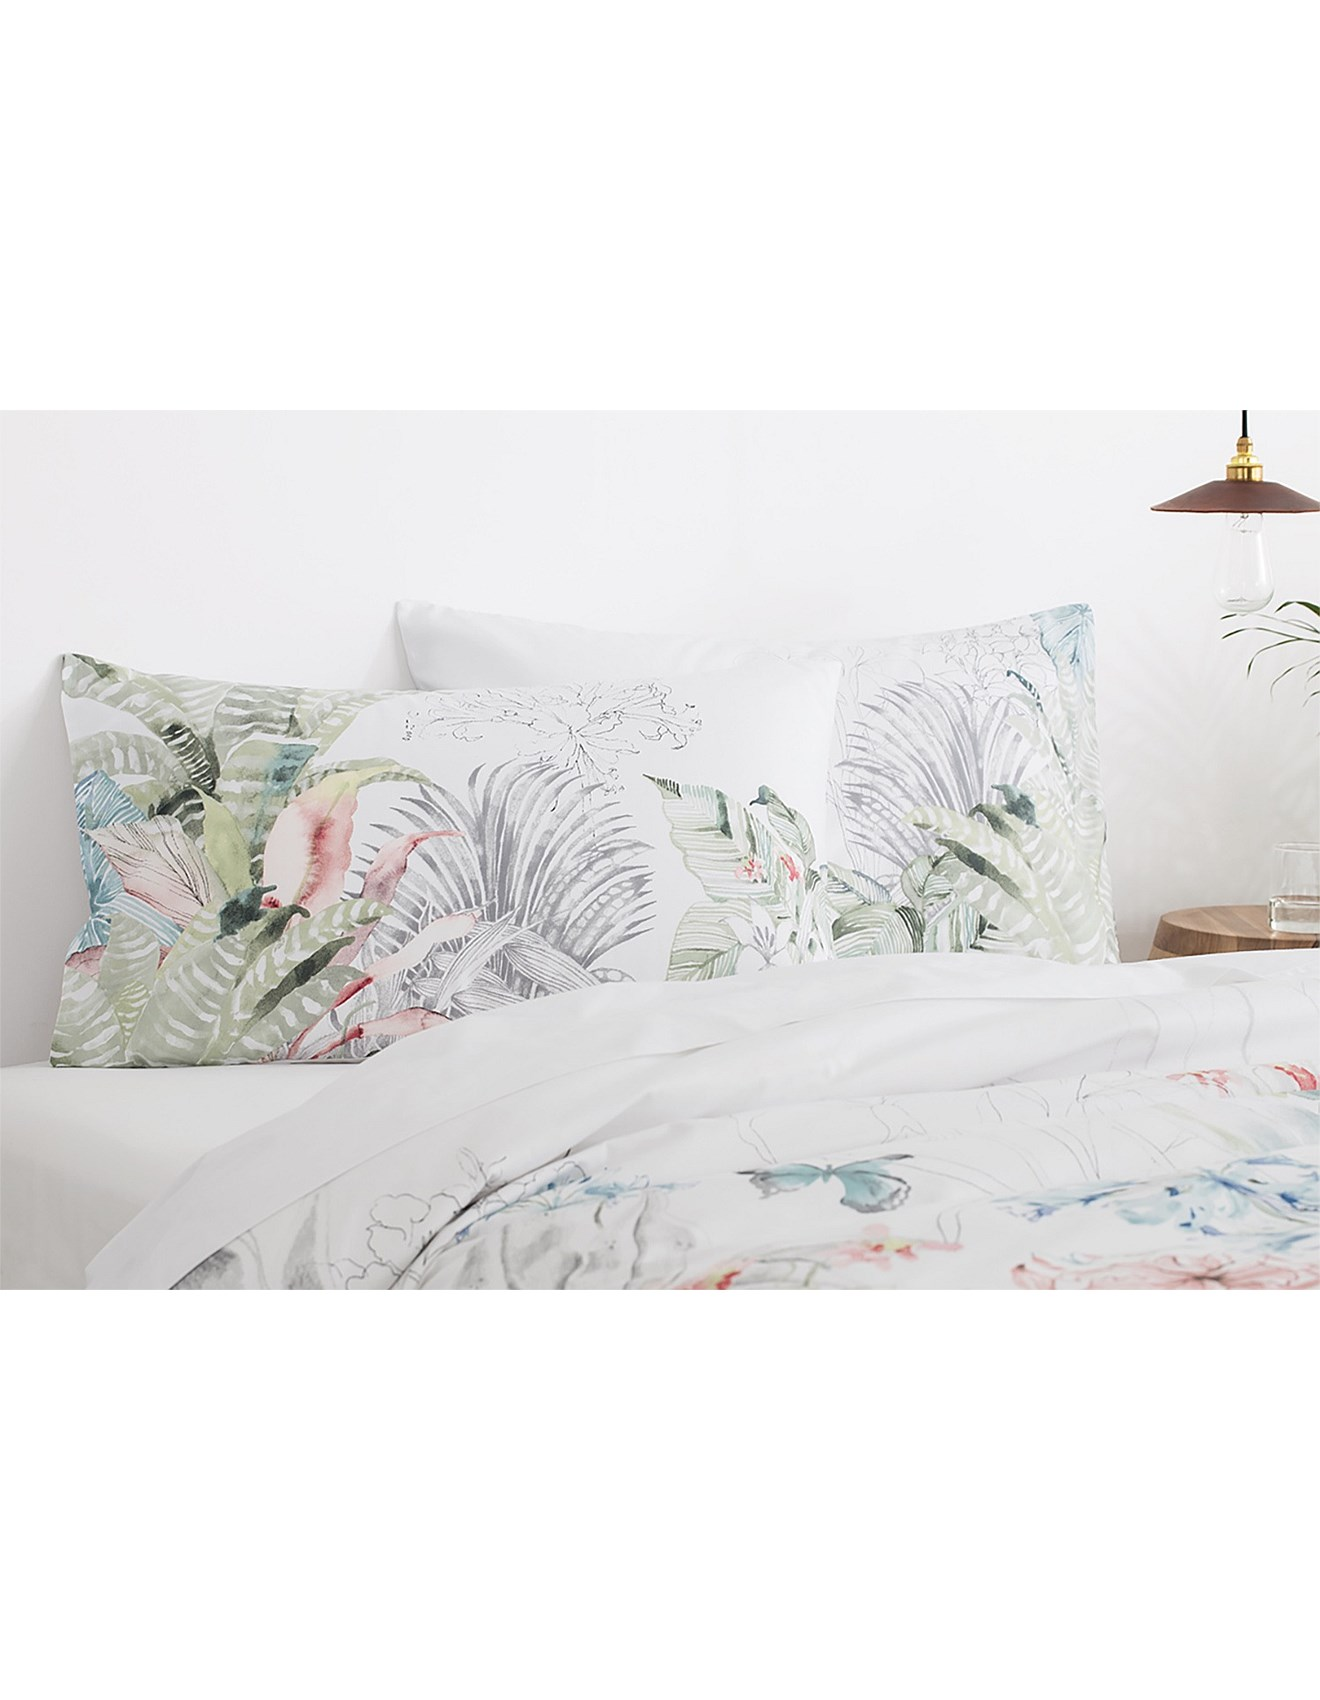 European Pillowcases Online Bedding And Bed Linen Bed Sheets And More Online David